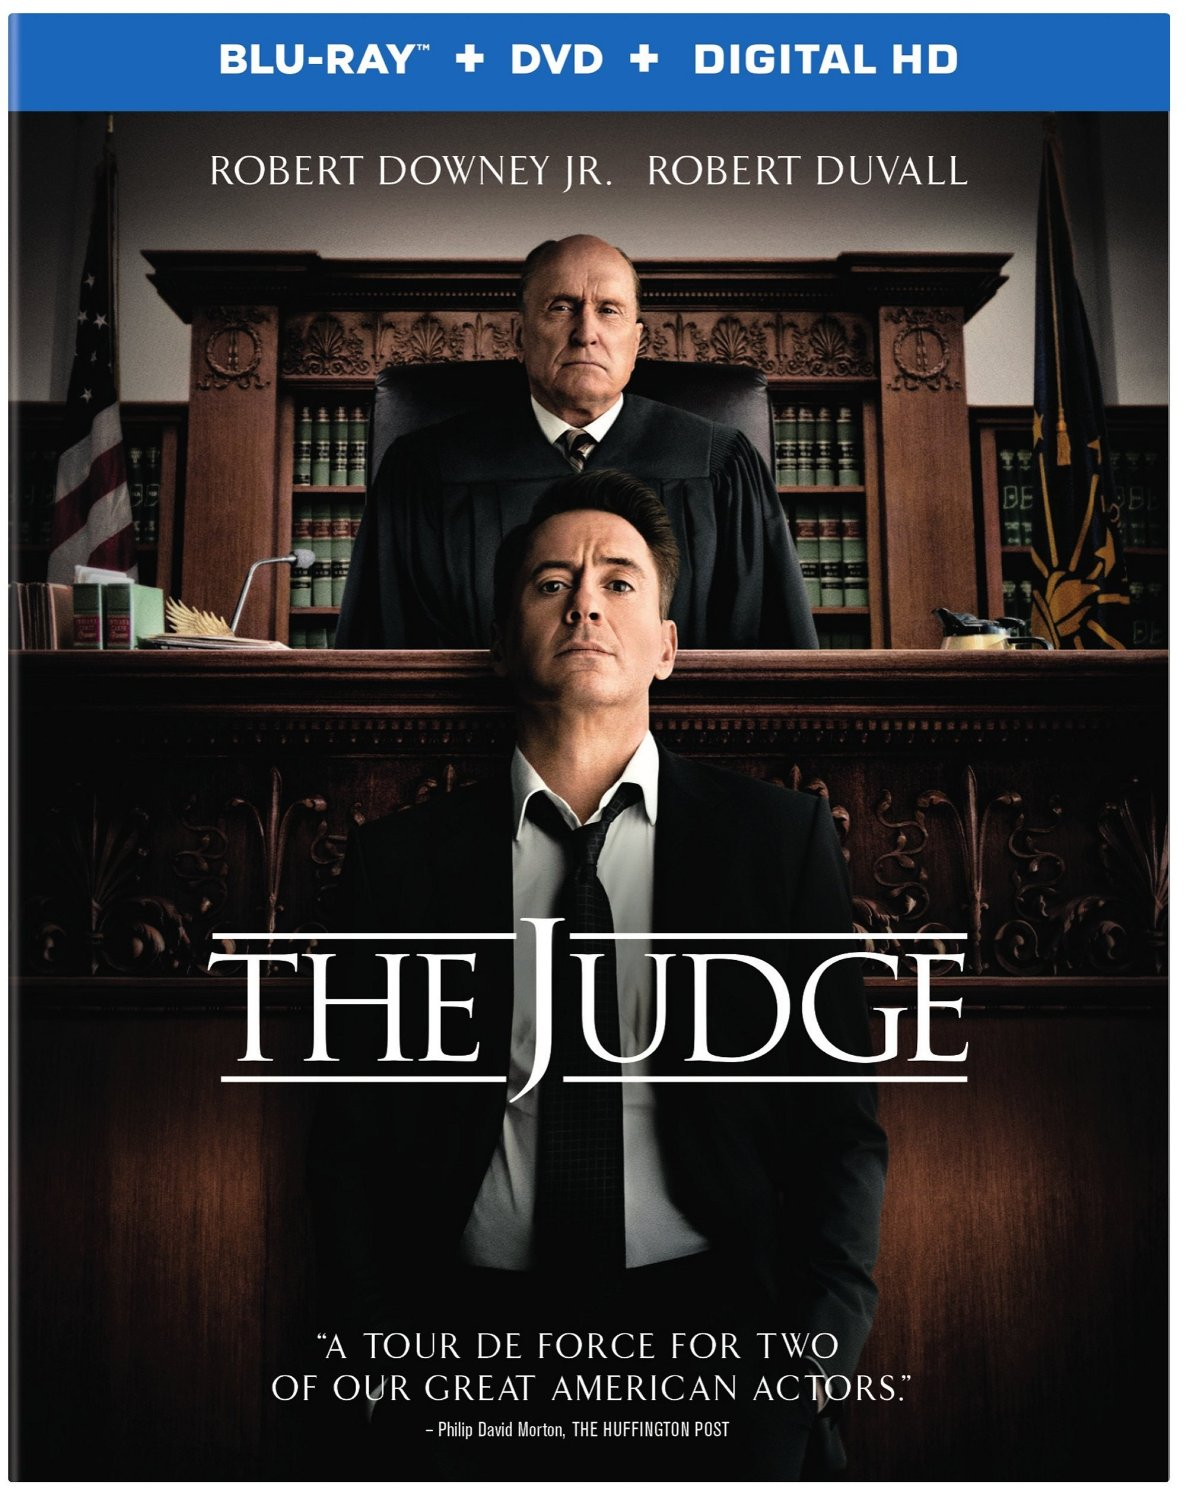 The Judge Blu-ray and DVD